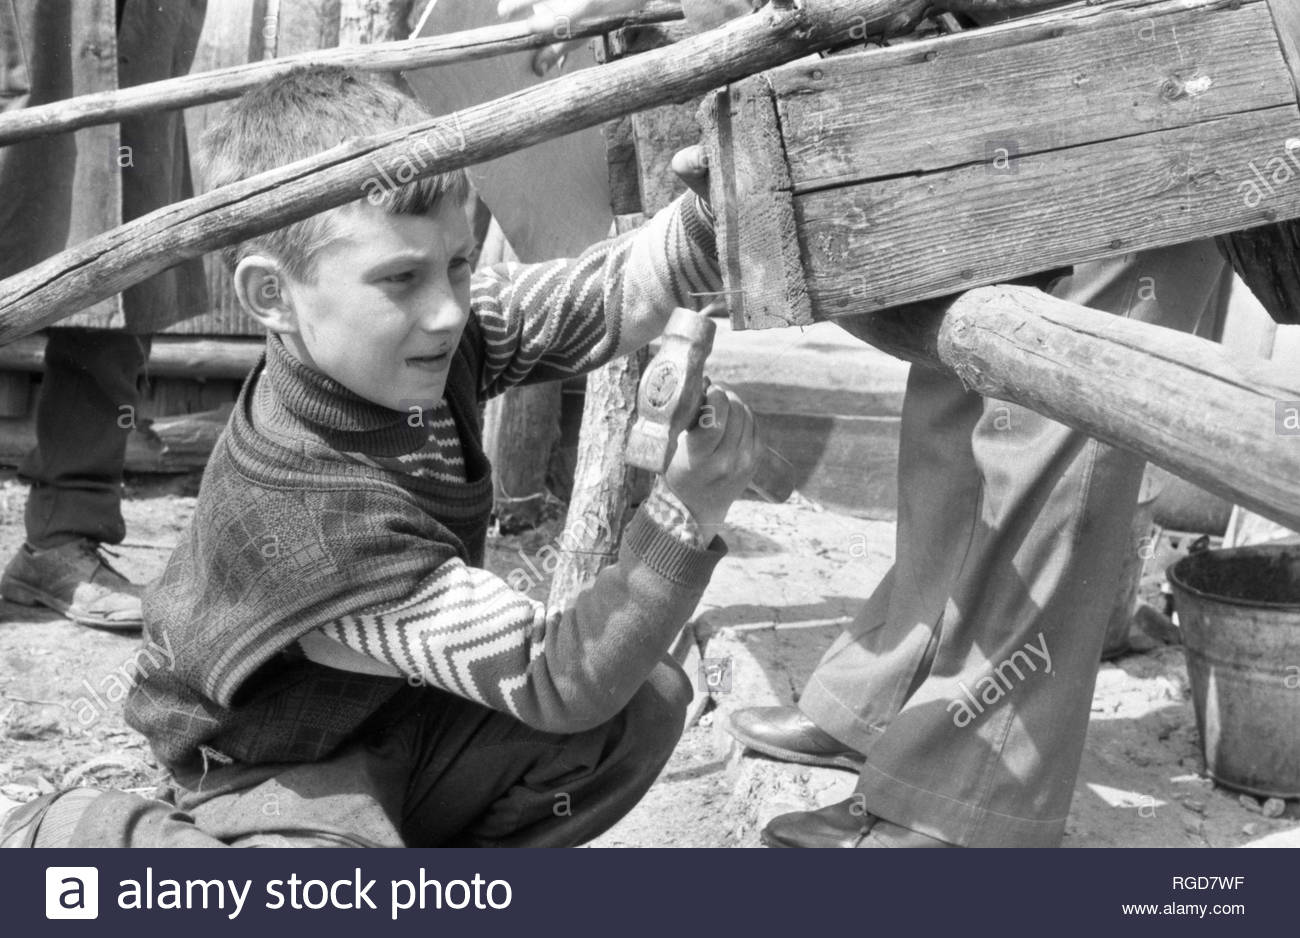 The village boy helps to his family. He nails the board that came off the wain. Boy does this job with knowledge of the matter. He's the real helper! The grandfather and father watching him. The men accustoming him to independent and adult life. - Stock Image